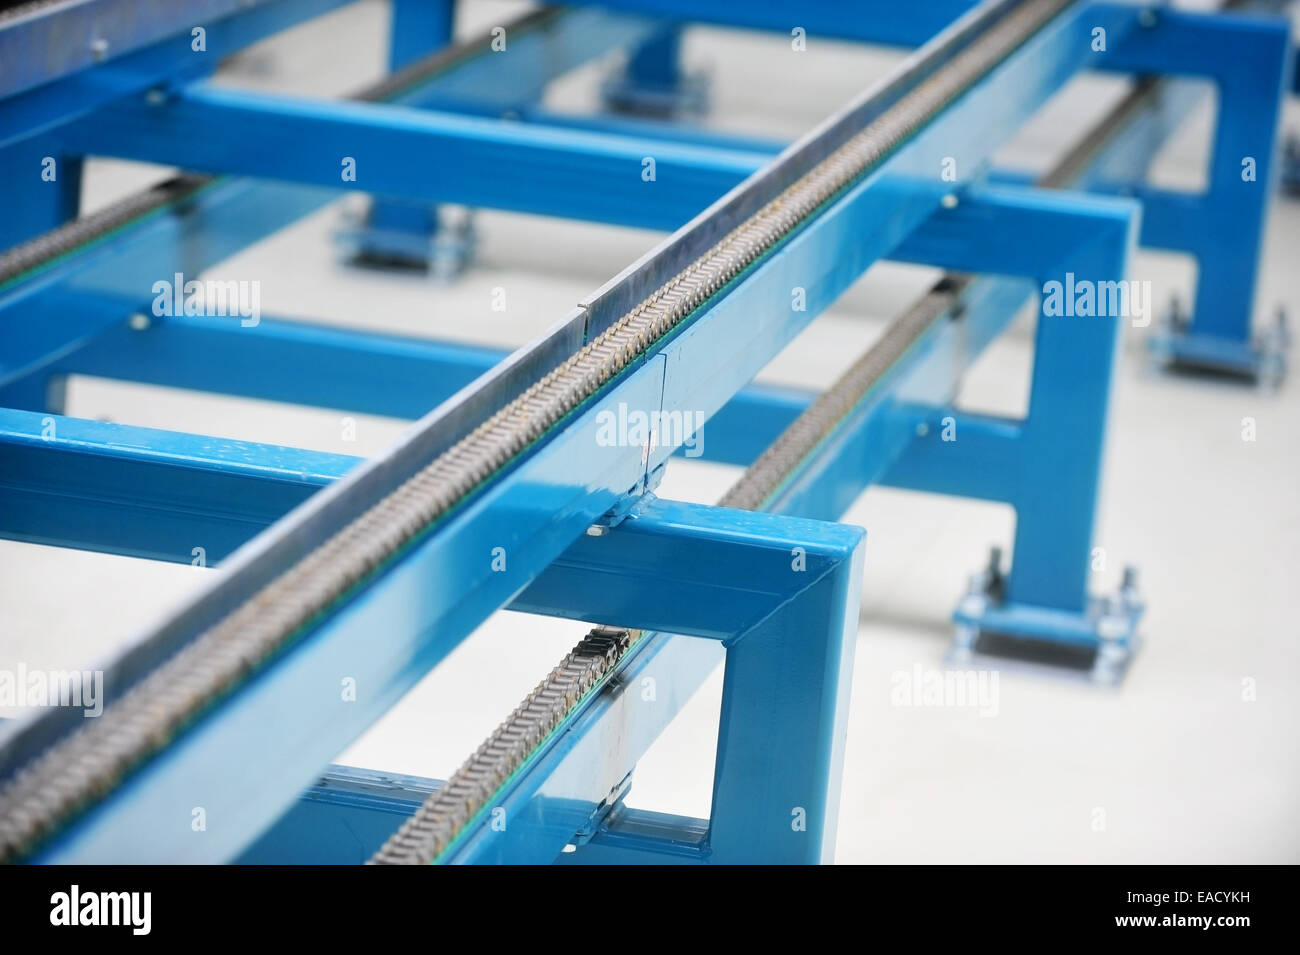 Industrial detail with a band conveyor chain Stock Photo